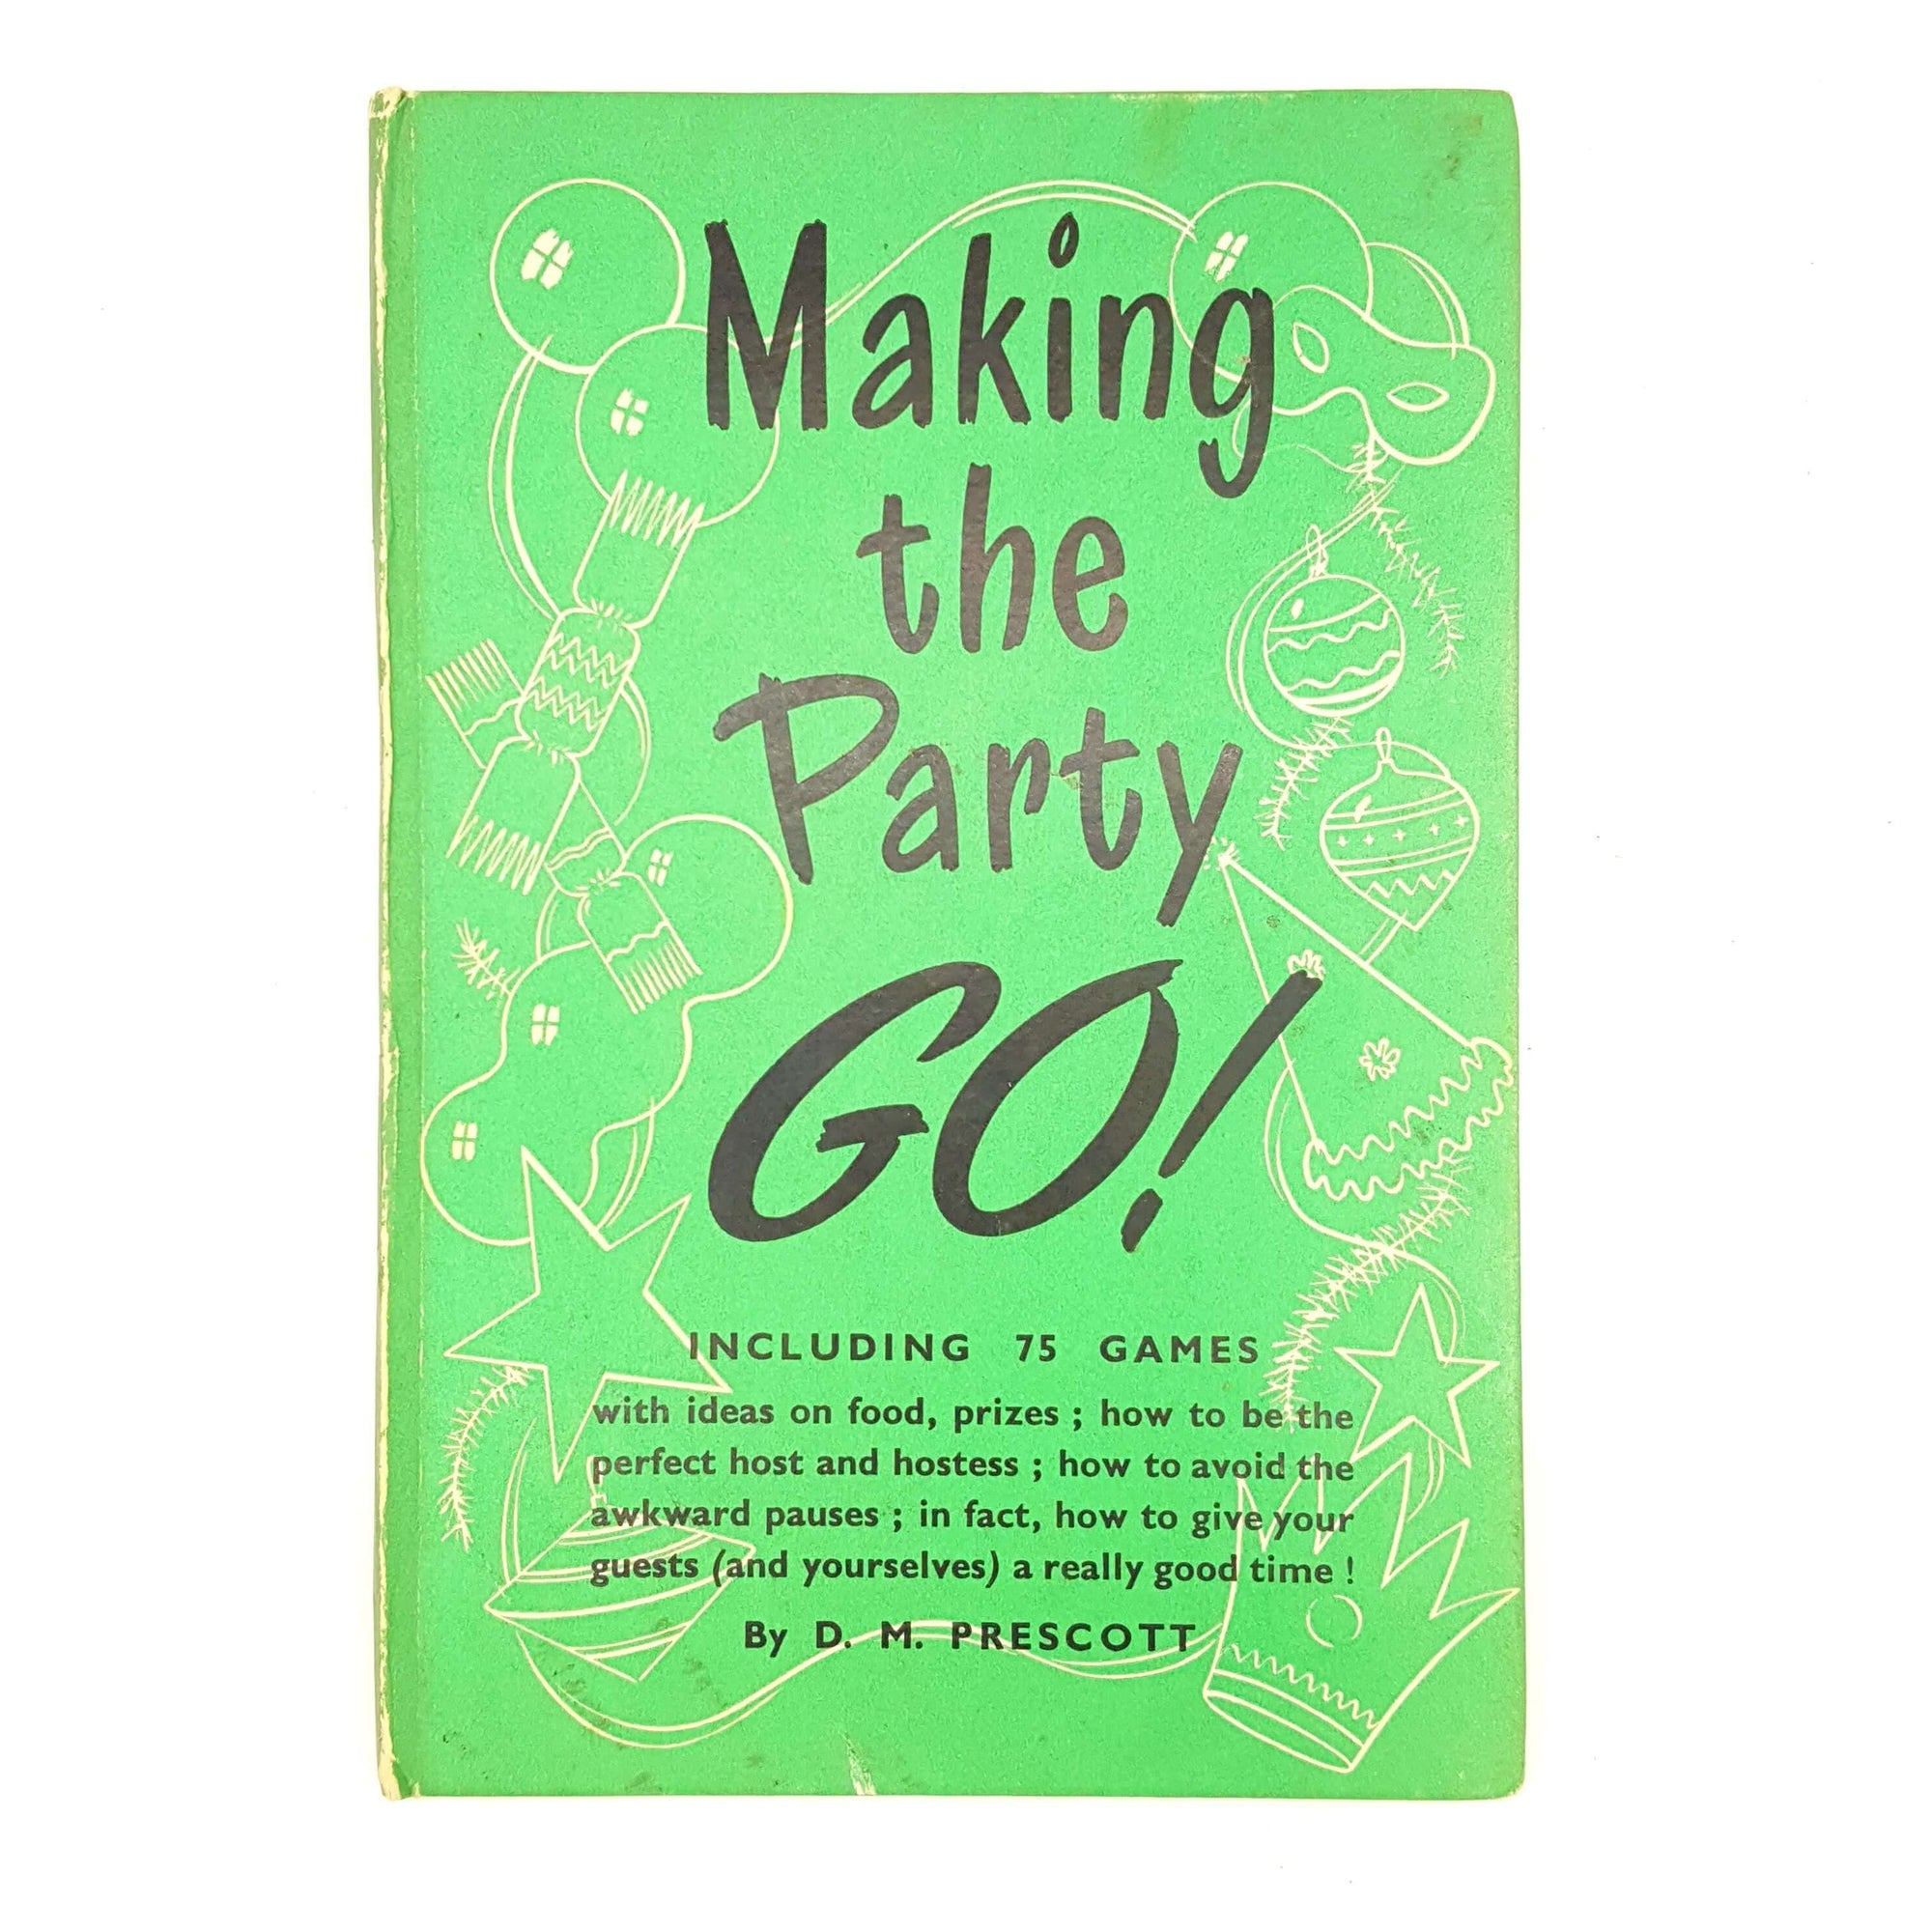 Making the Party GO! By D. M. Prescott 1958 Country House Library